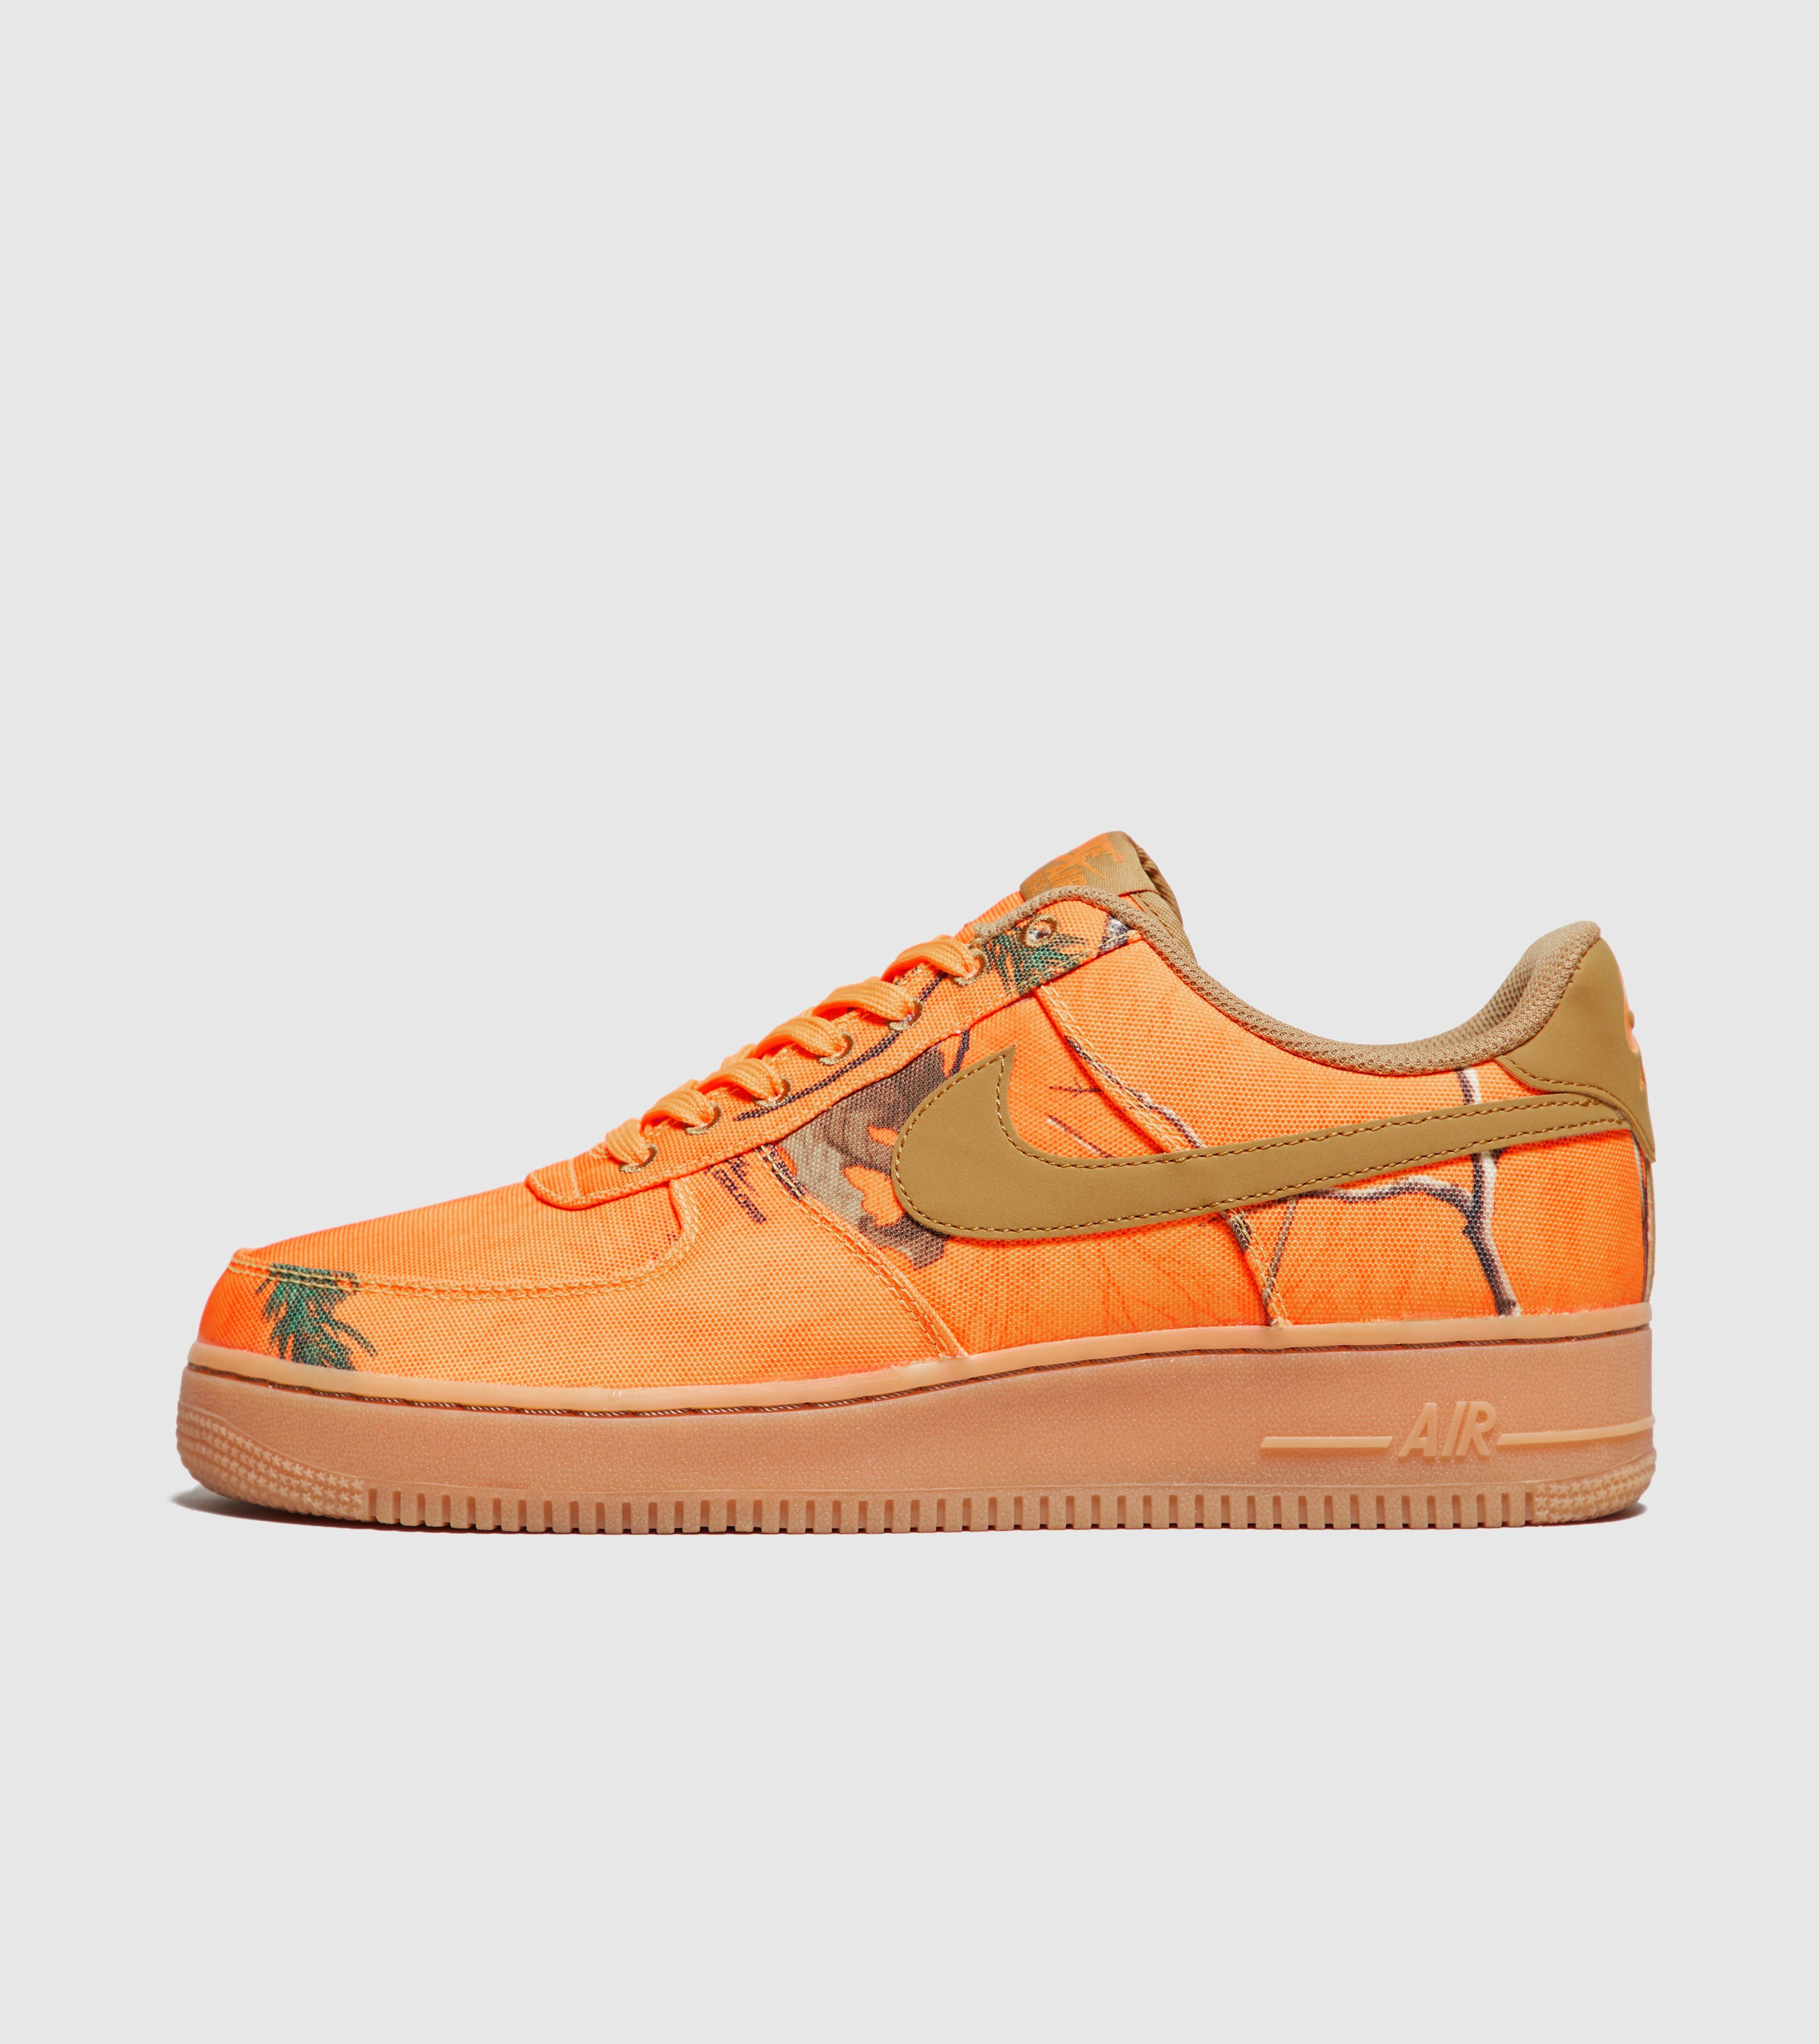 new arrival e3f0b 41386 Nike Air Force 1 Low 'Realtree' Camo Pack | Size?